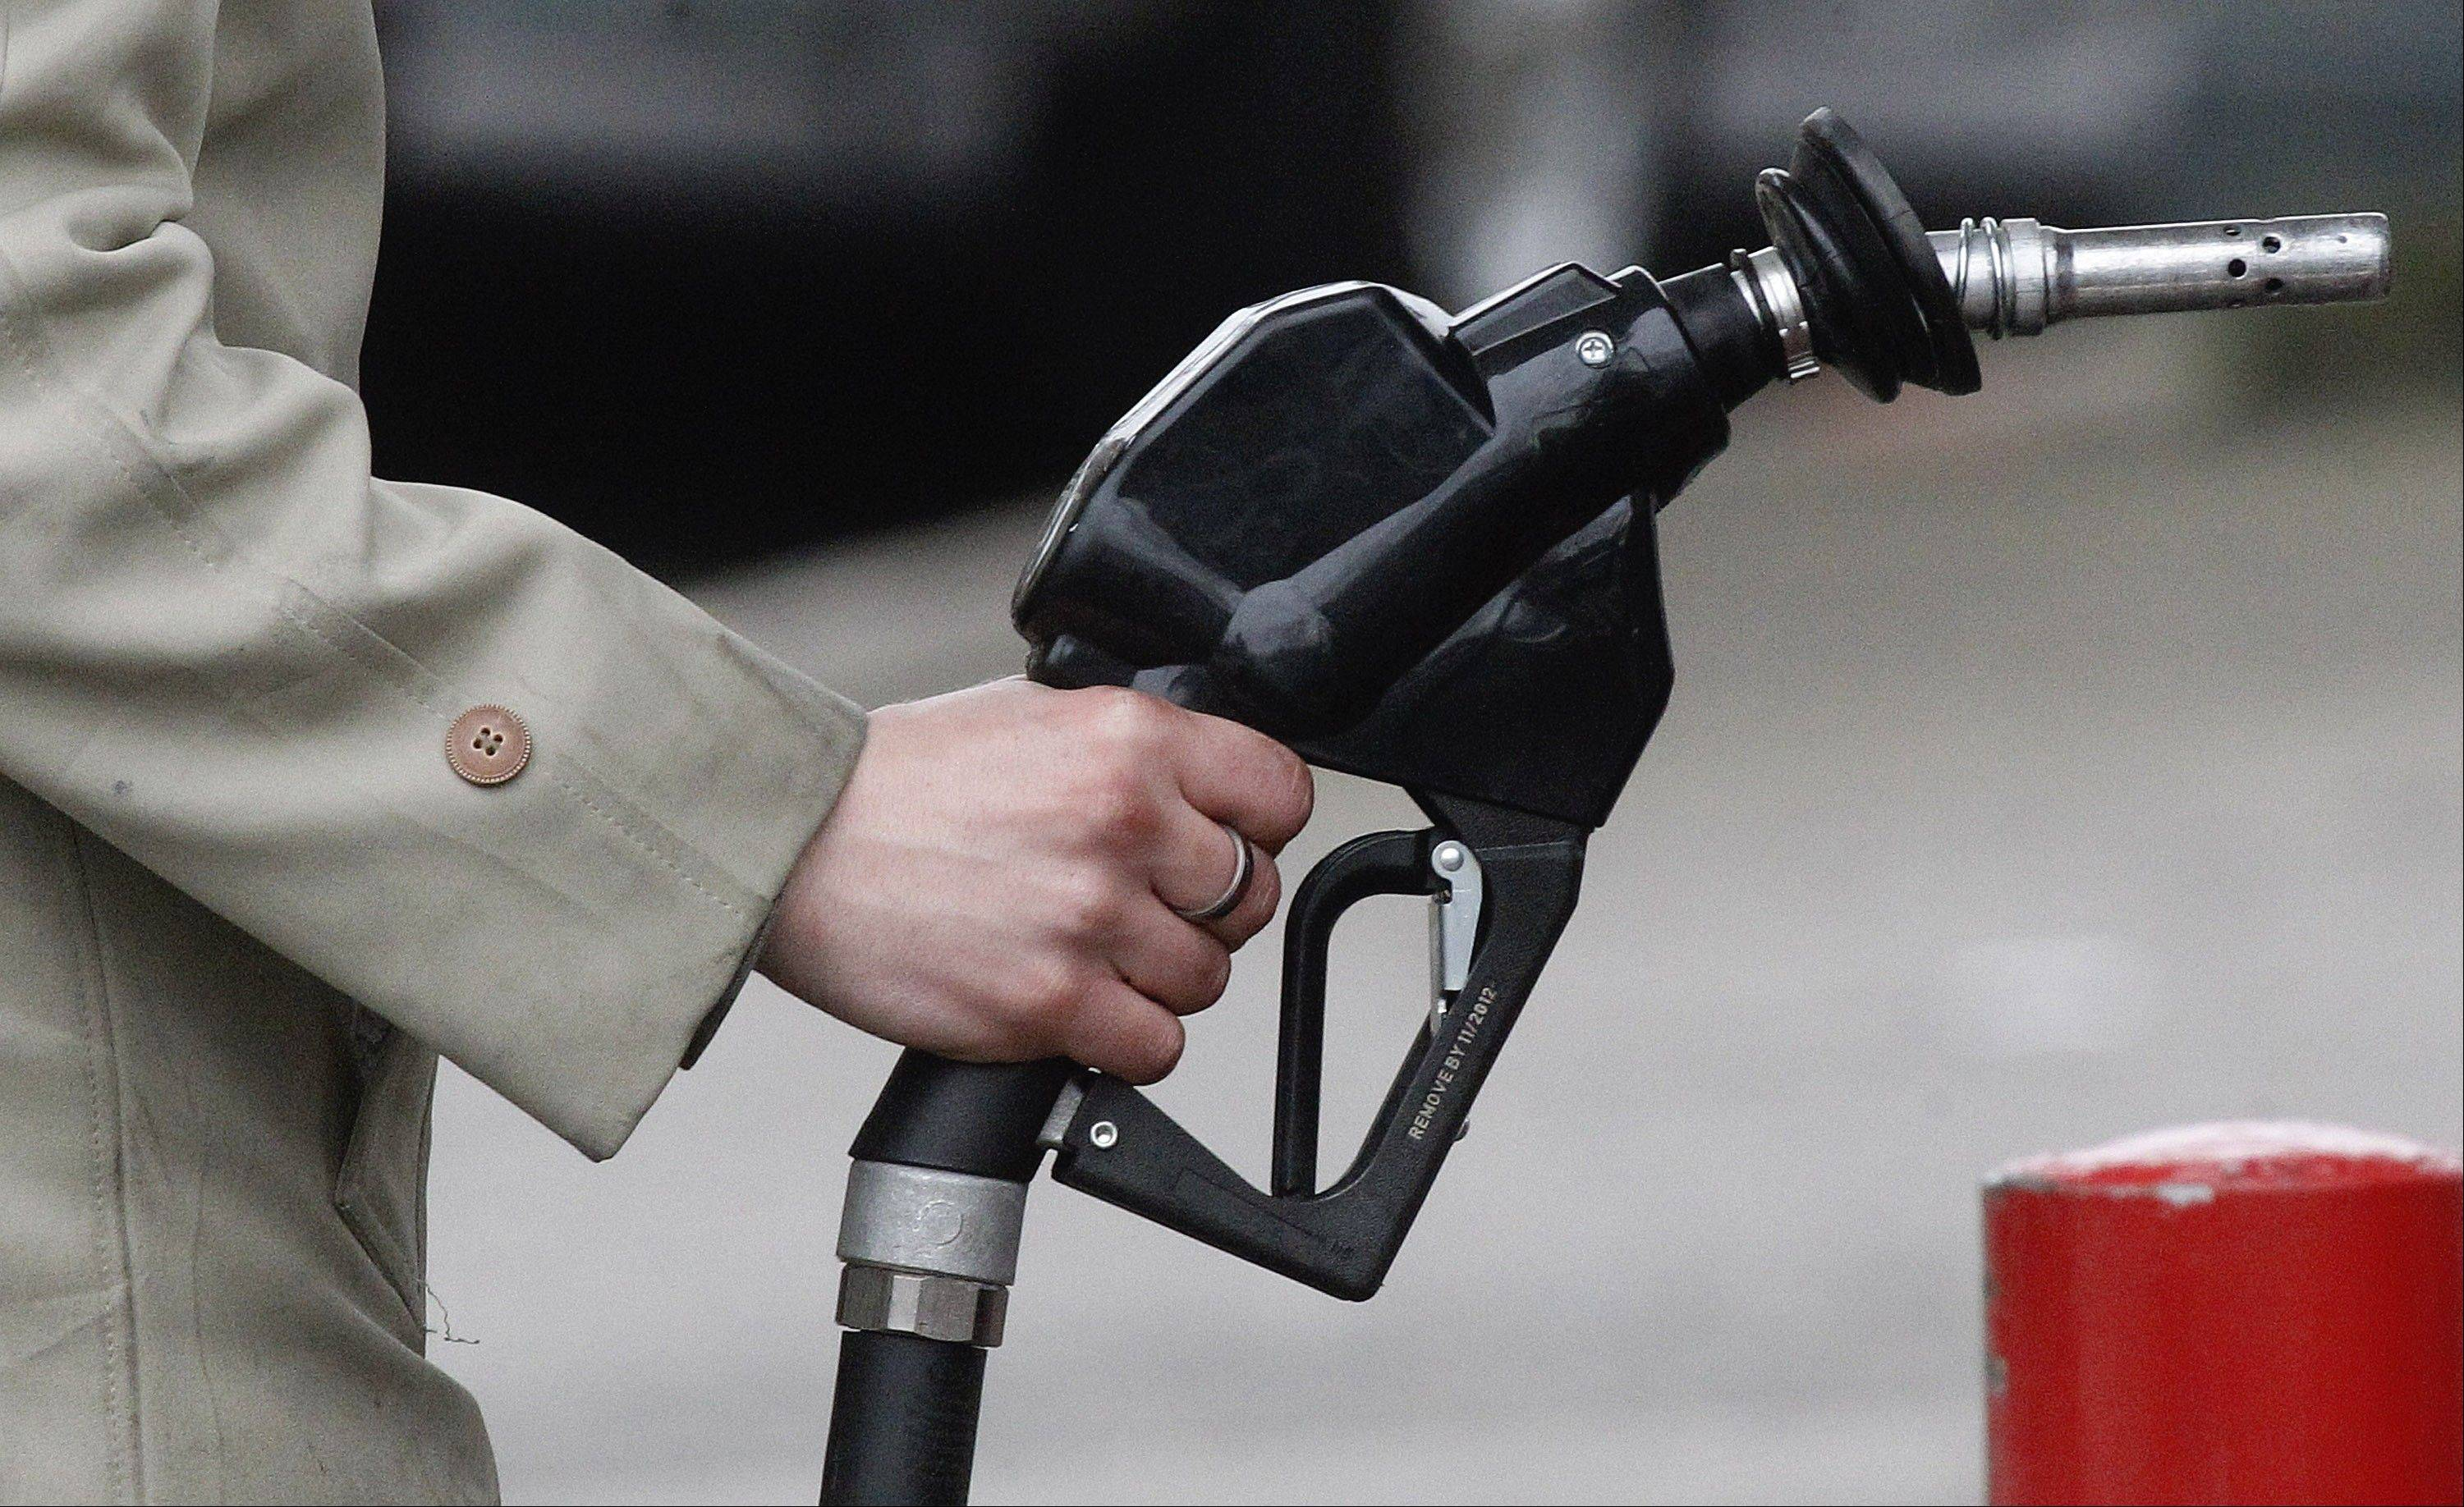 According to AAA's Fuel Gauge Report, the average price for regular unleaded gas Thursday in the Chicago metropolitan region was $4.45 per gallon. It was nearly a dollar less per gallon a month ago.